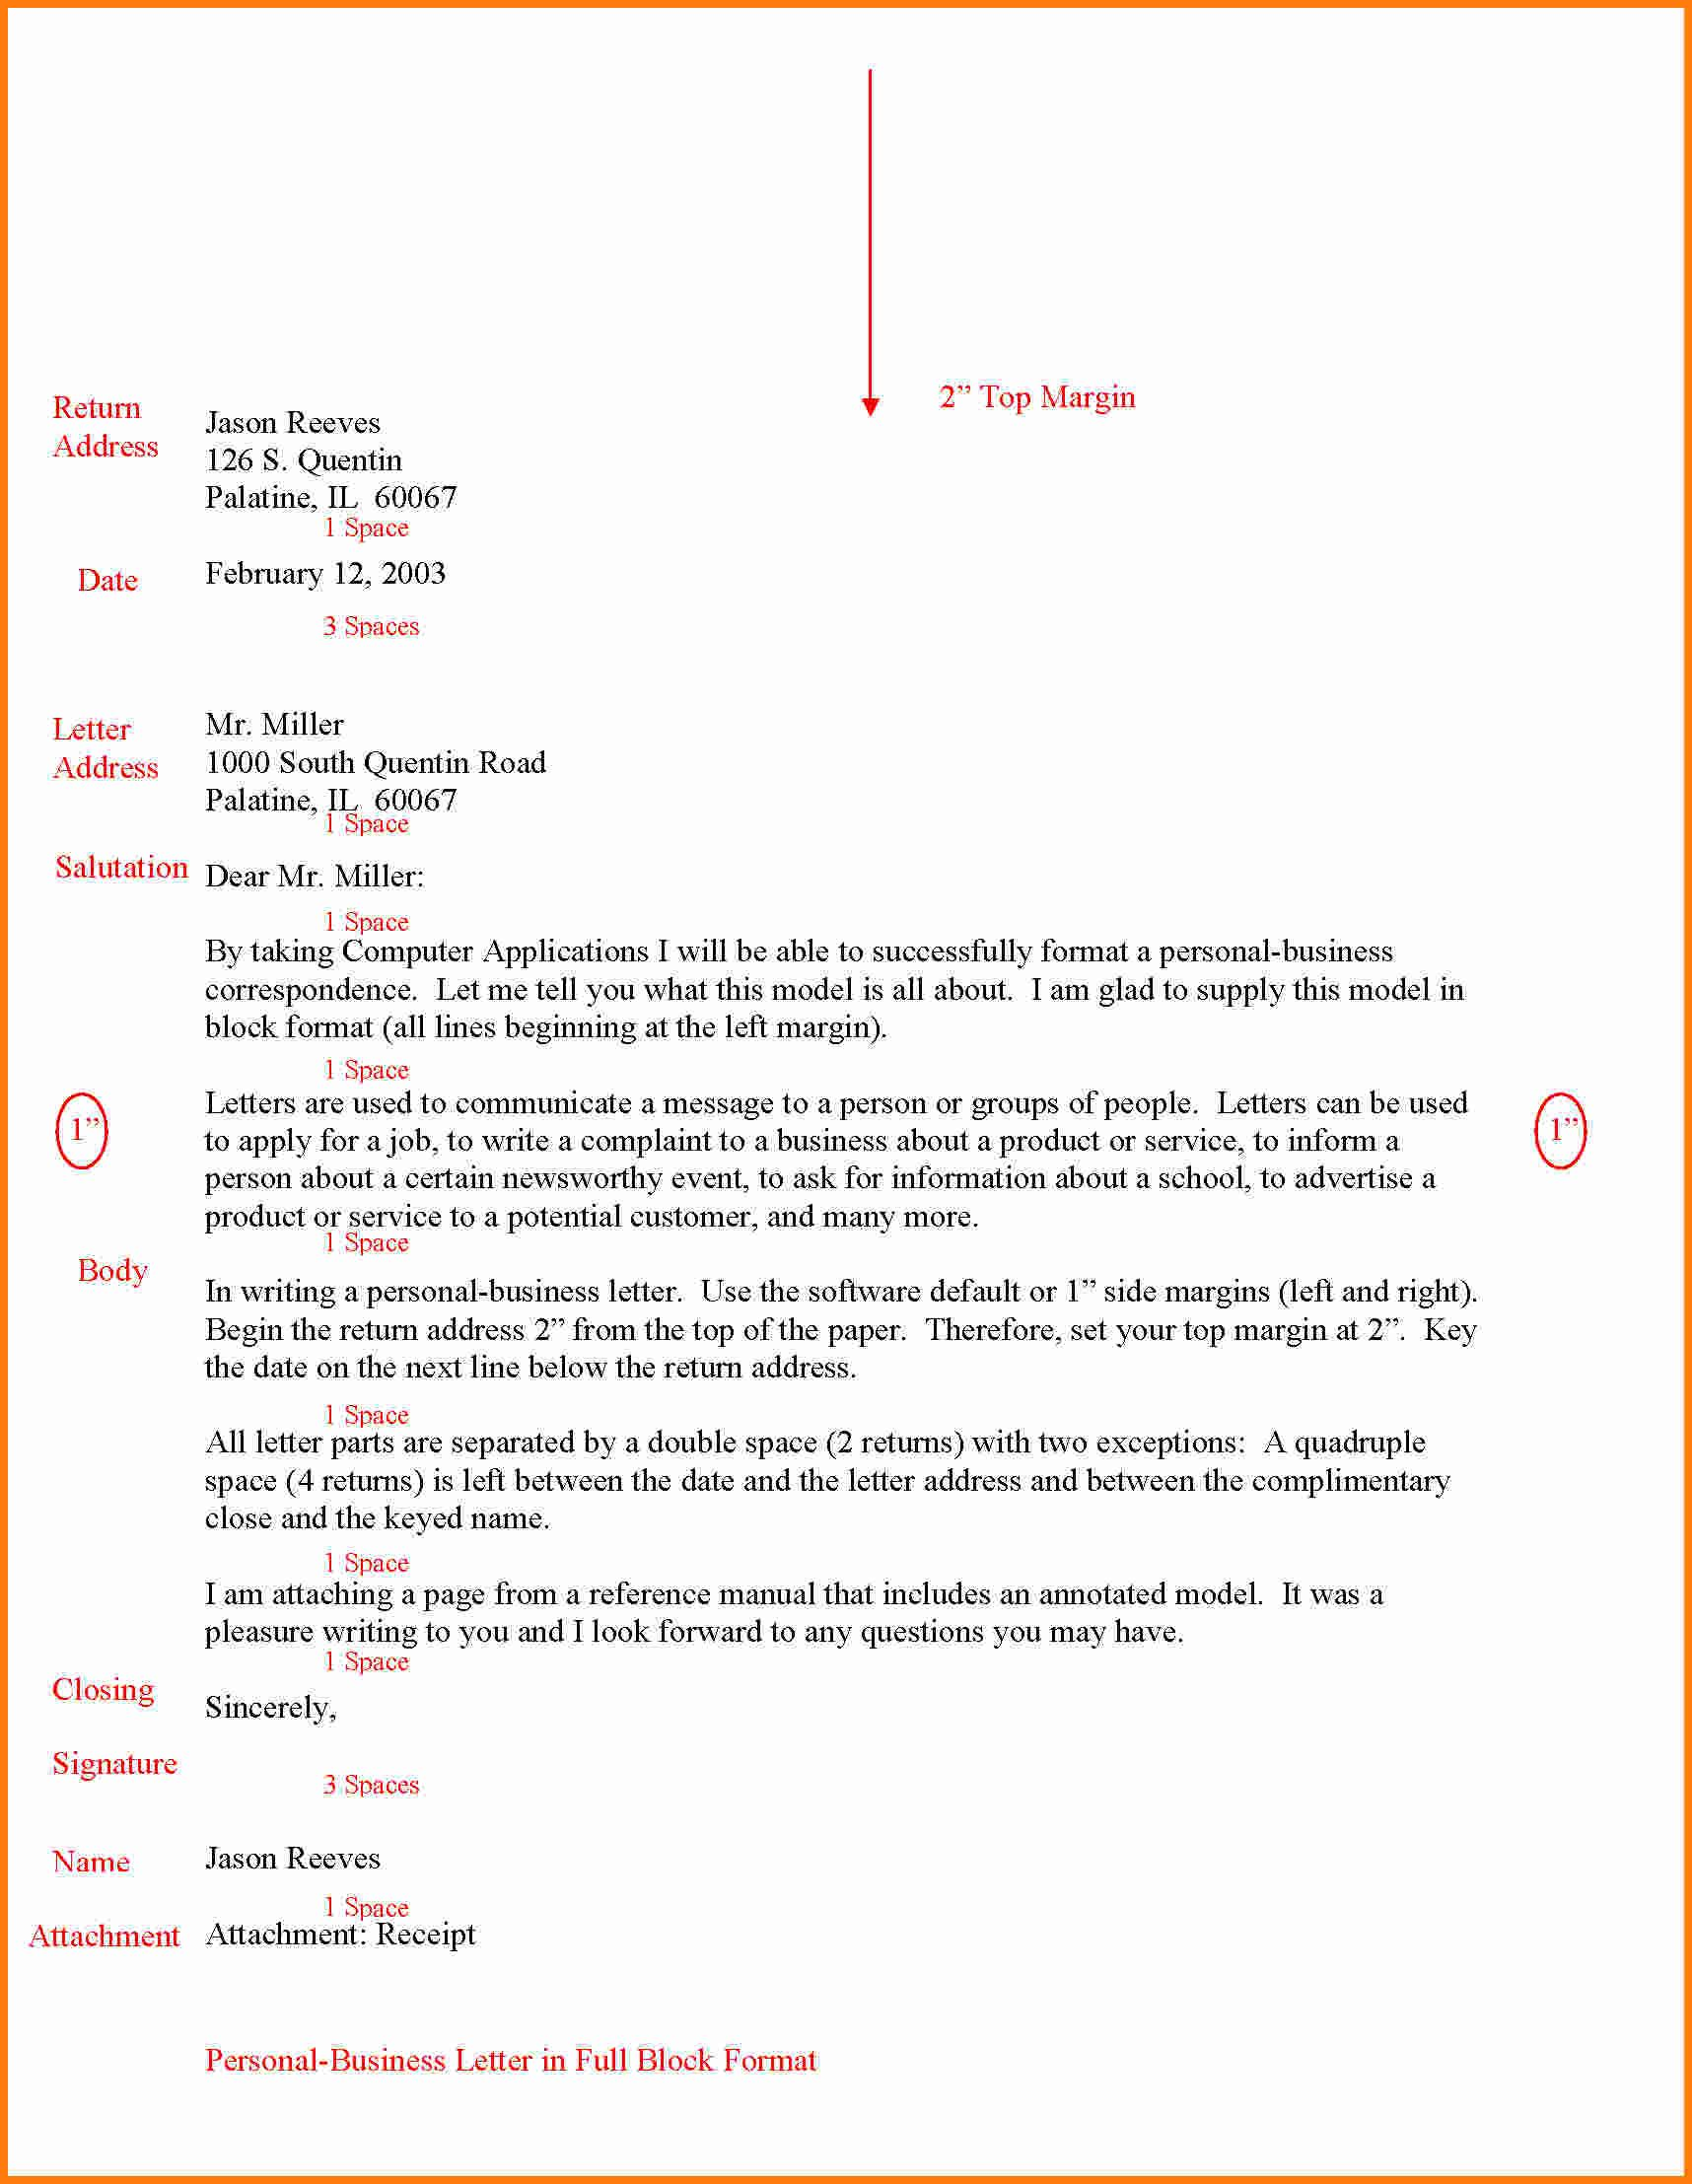 Letter Format Full Block Ledger Paper Style Sample Application Form Cover  Templates Pinterest  Personal Letter Of Reference Format